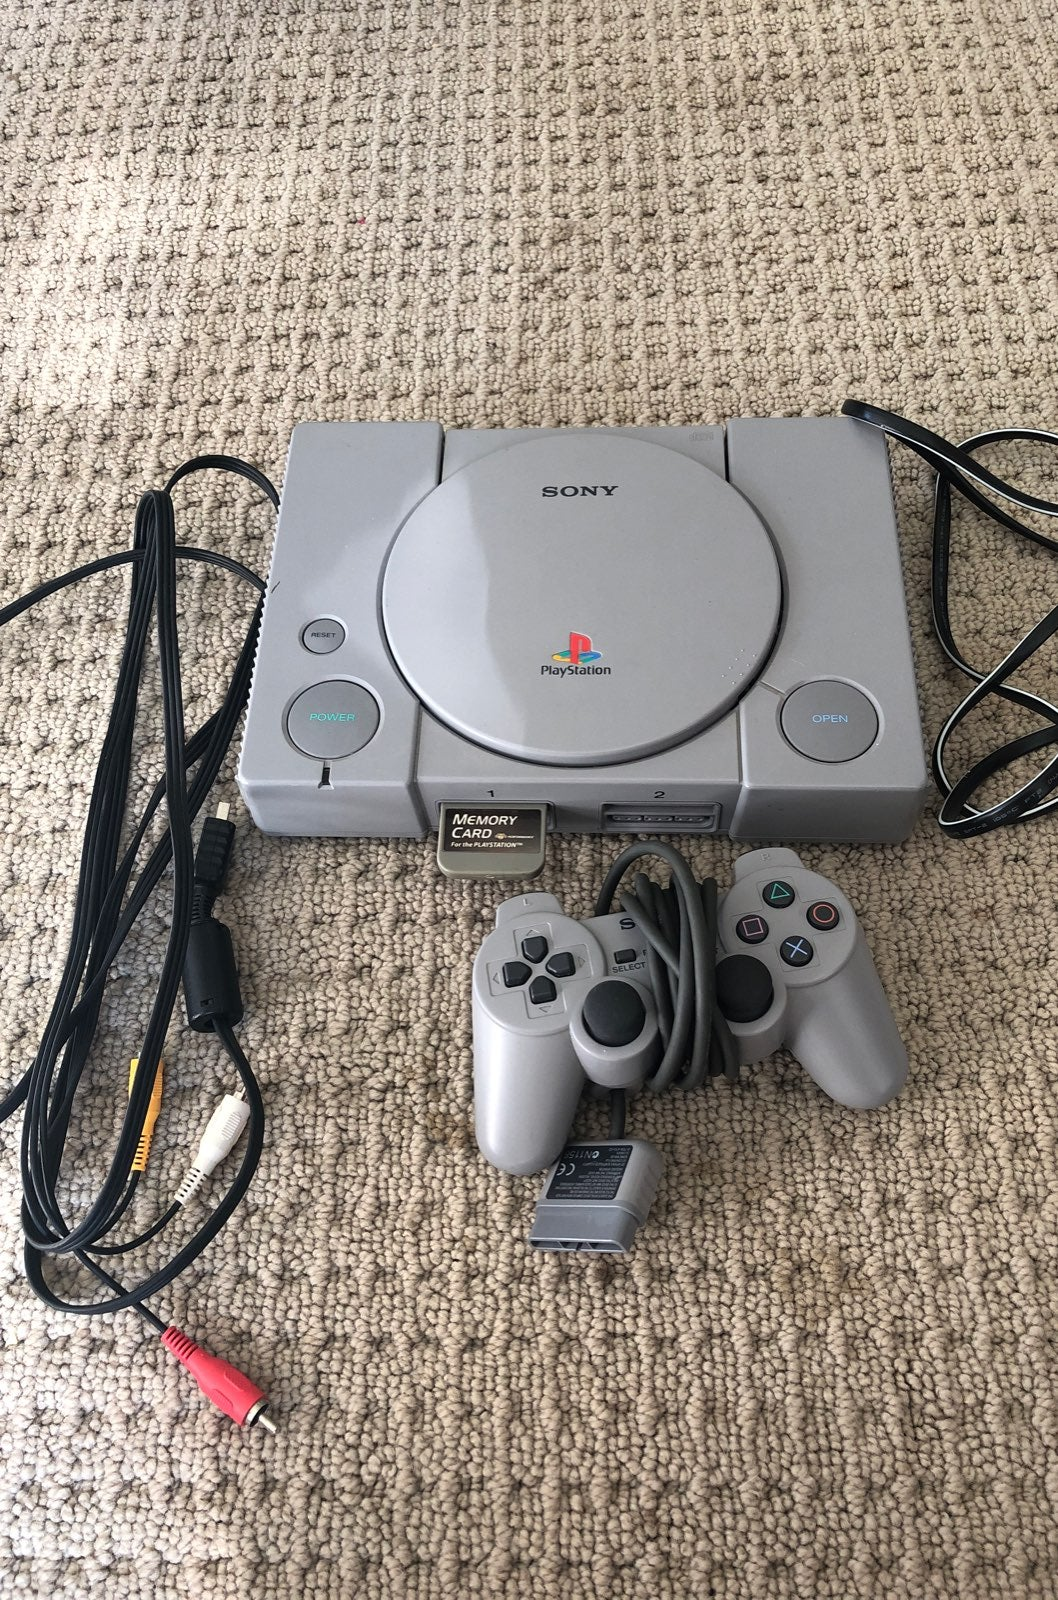 PlayStation 1 with controller and memory